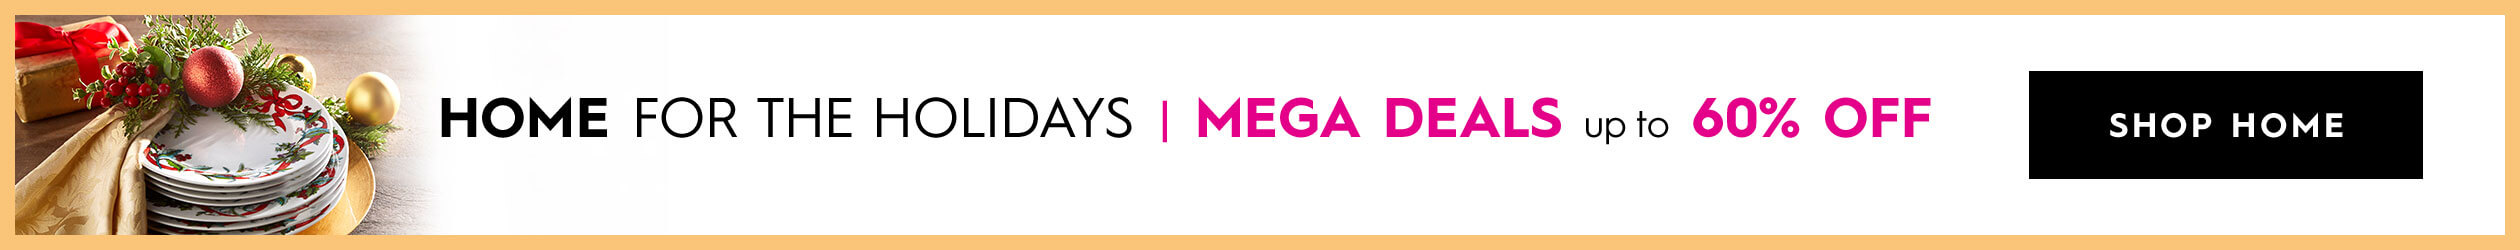 Home for the holidays! Mega deals up to 60% off! - SHOP HOME